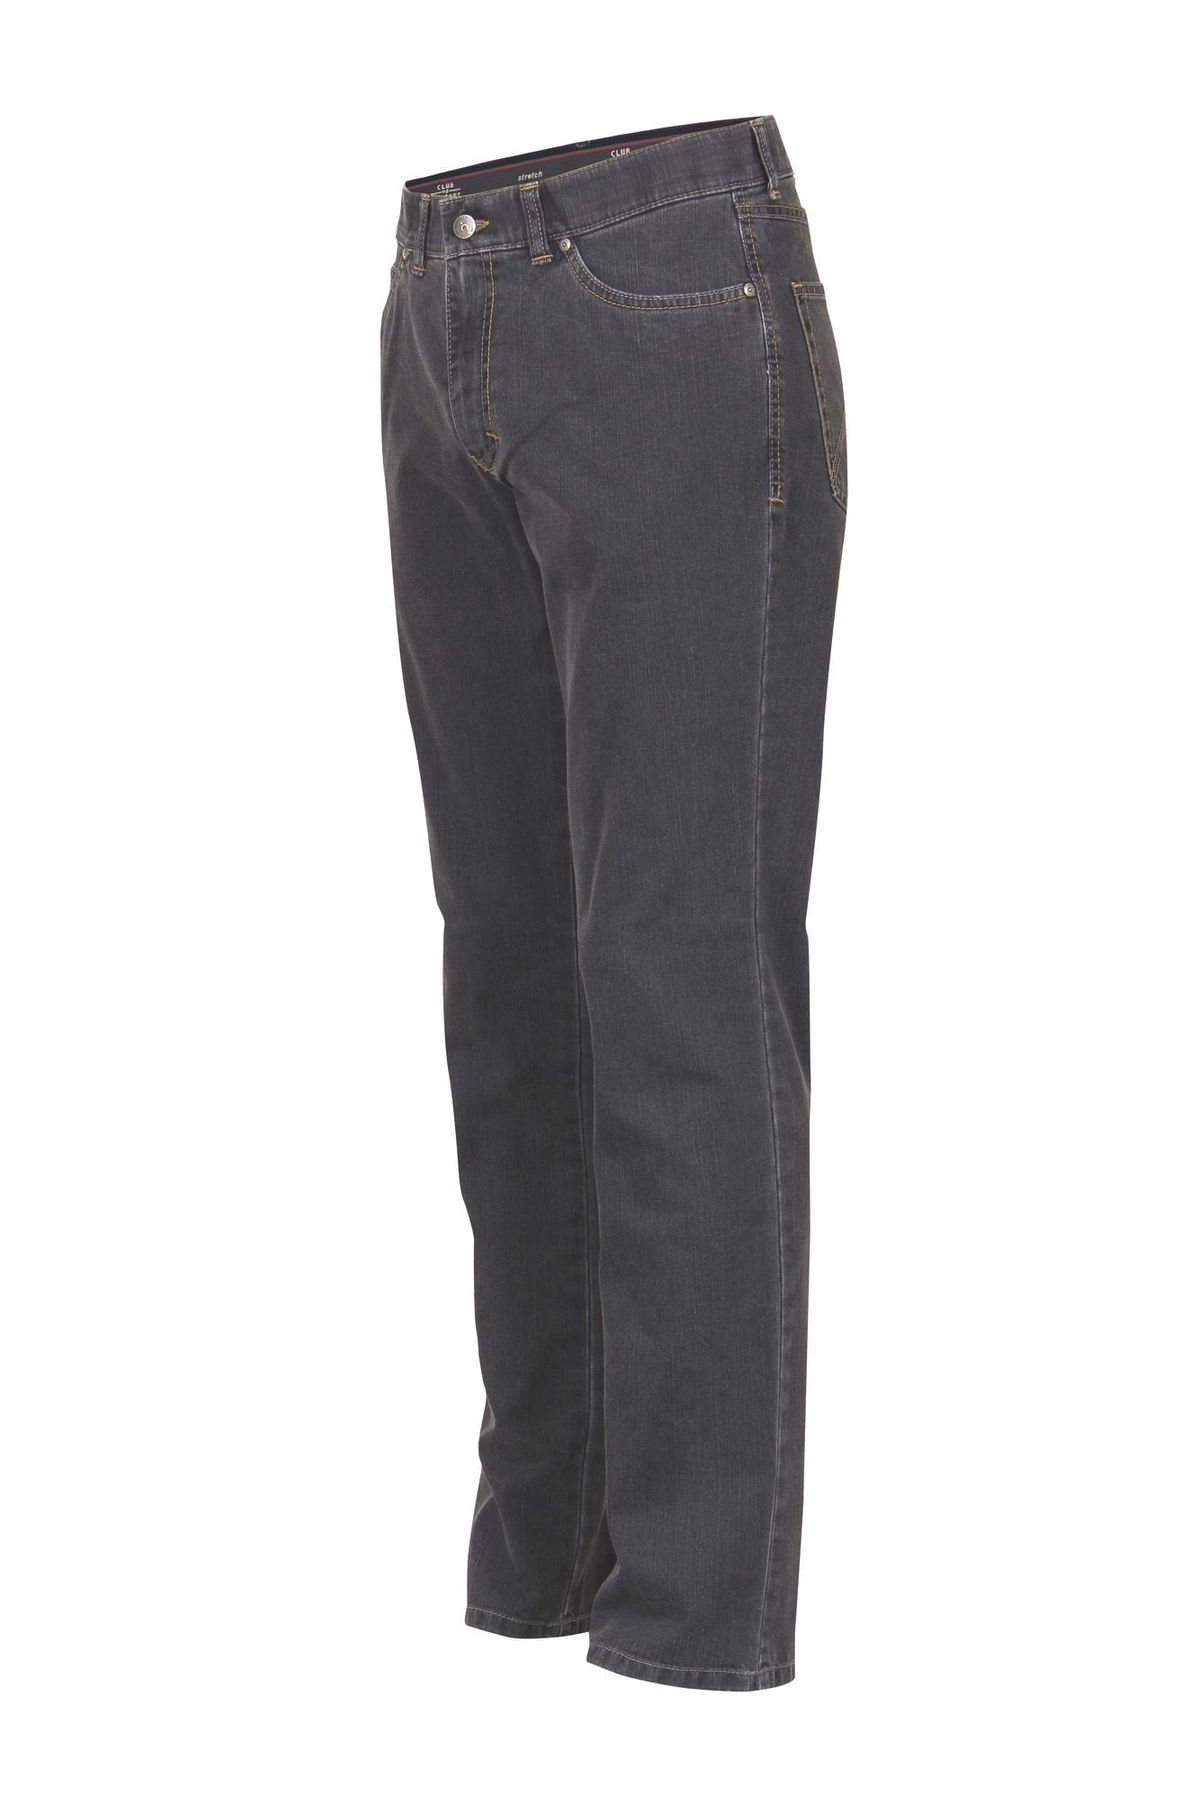 Club of Comfort - Herren Five Pocket Jeans in verschiedenen Farben, James (4631) – Bild 14